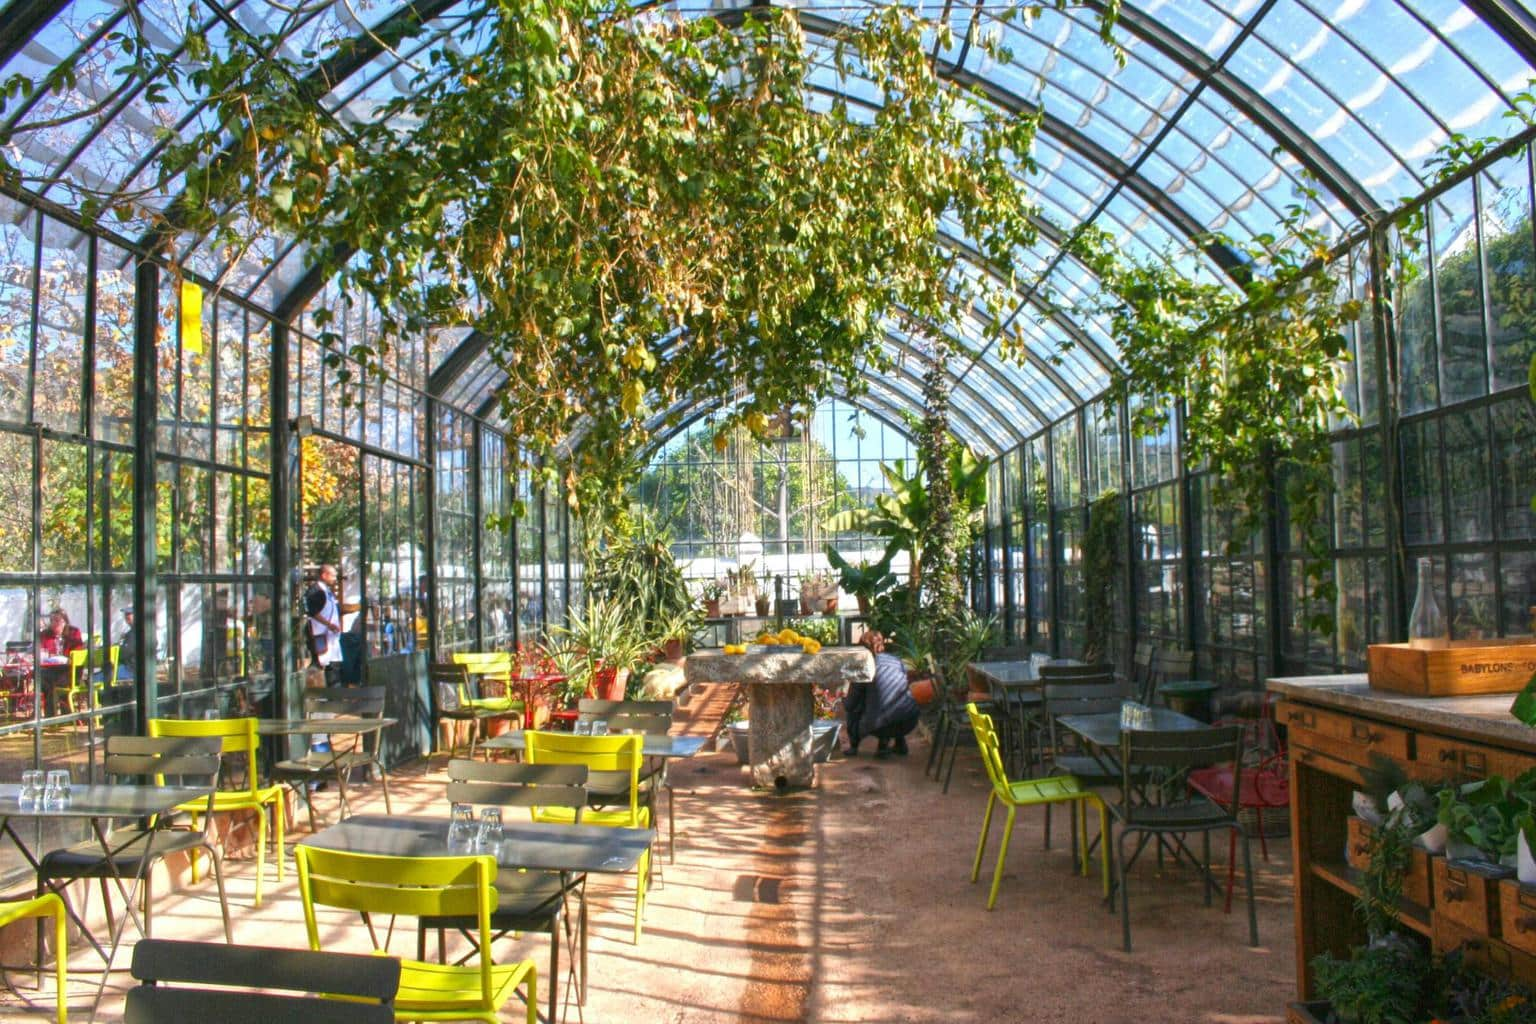 The actual greenhouse at Babylonstoren